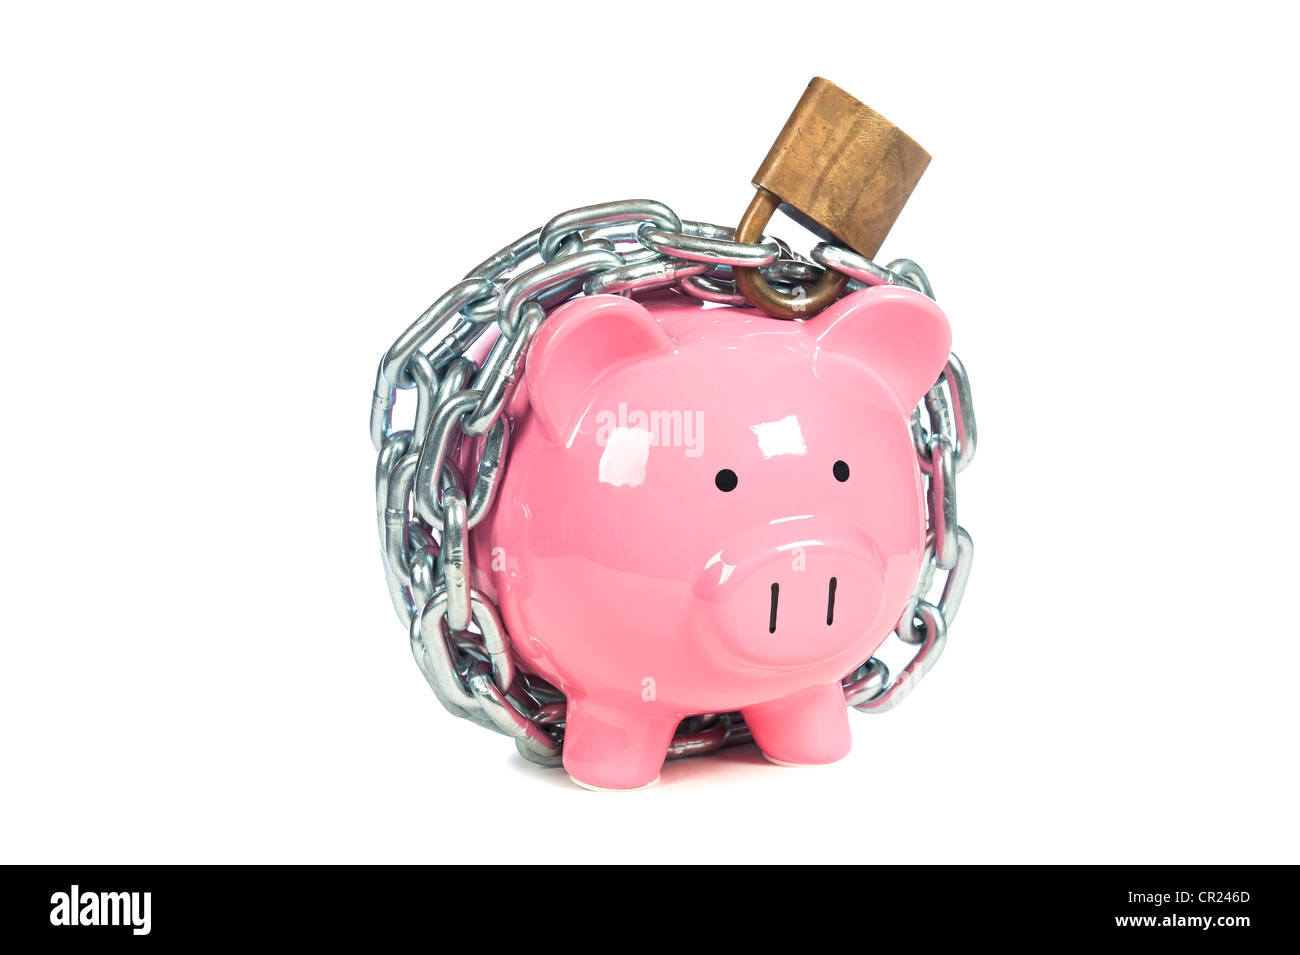 A pink piggybank chained up and locked. Image can be used for financial protection inferences or other investment messages. Stock Photo